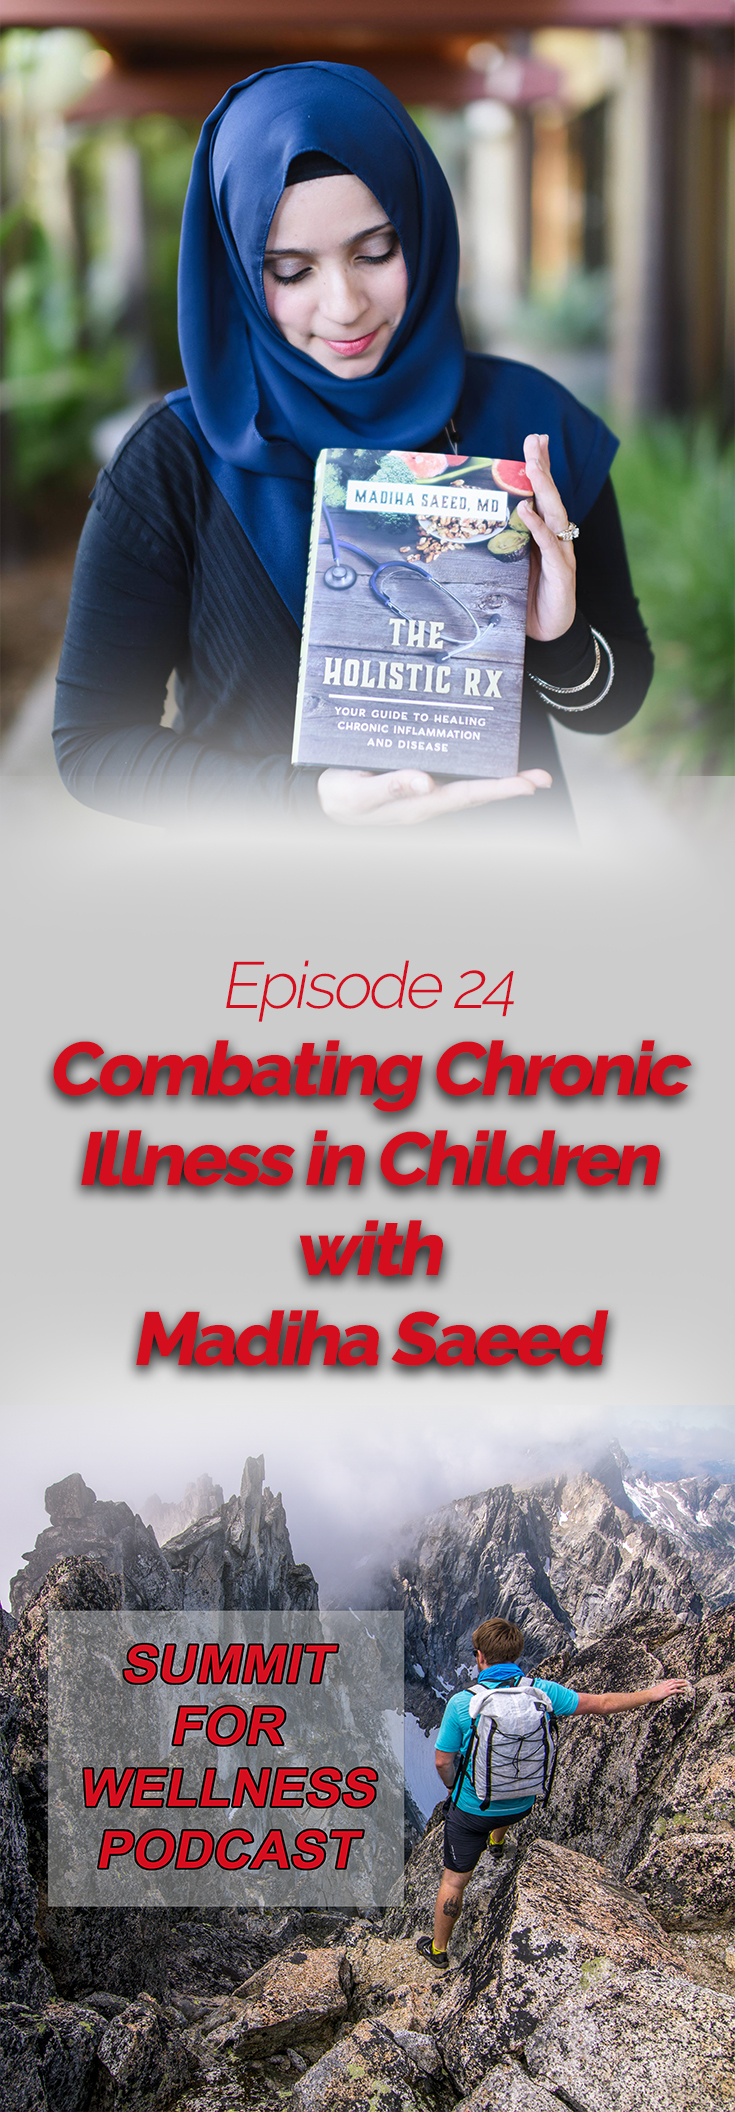 Listen to Madiha Saeed talk about how she teaches children about food and how food can be healing to the body